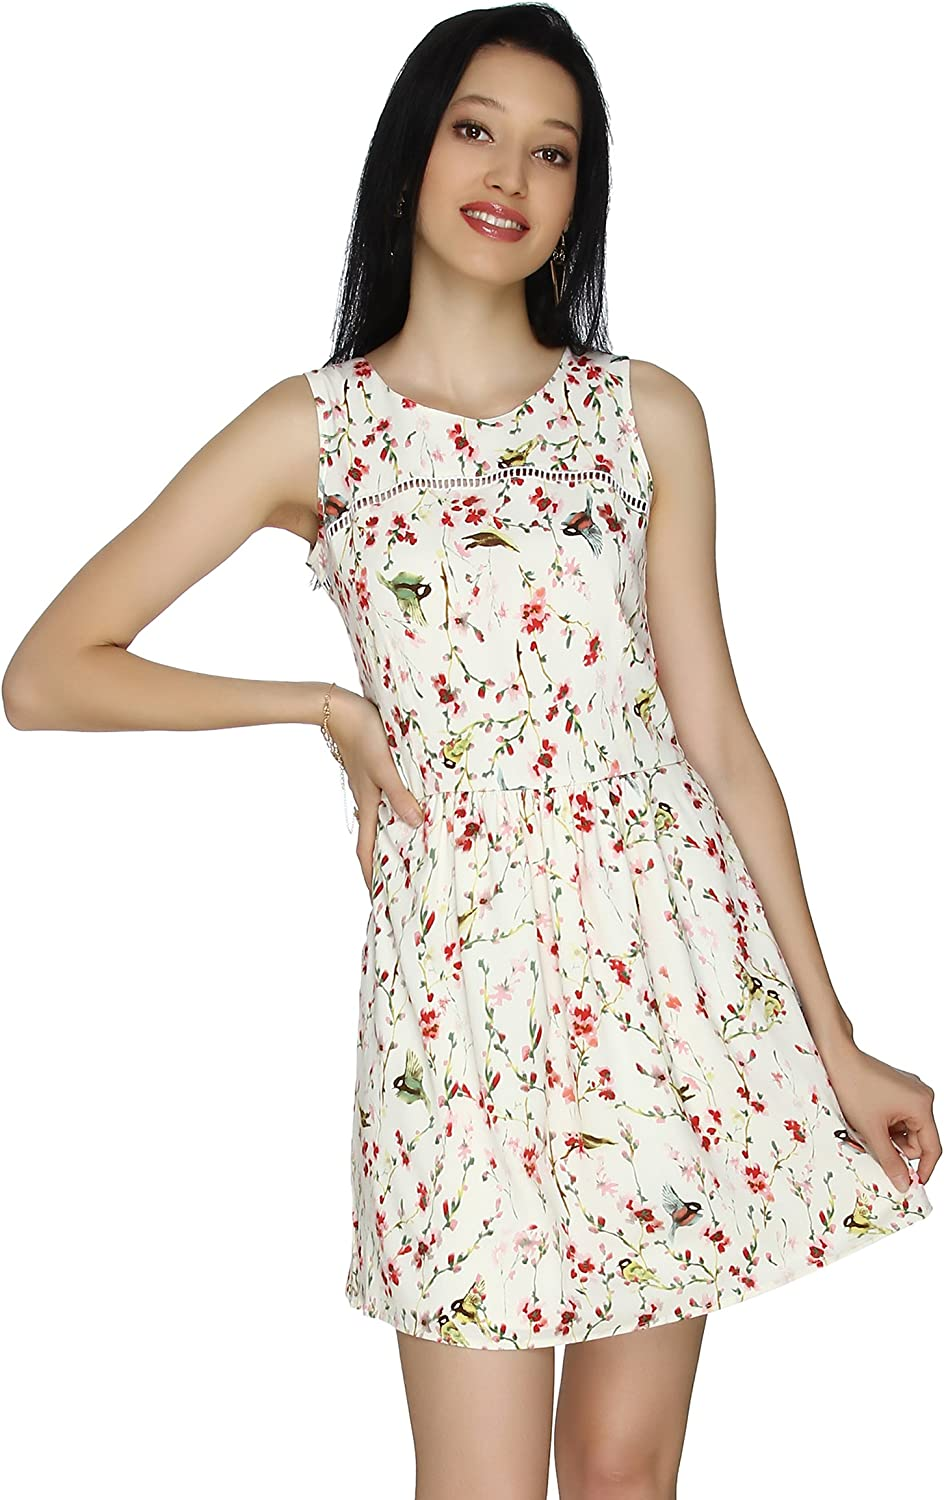 20Dresses Womens Floral Printed Fit and Flare Casual Sleeveless Short Dress